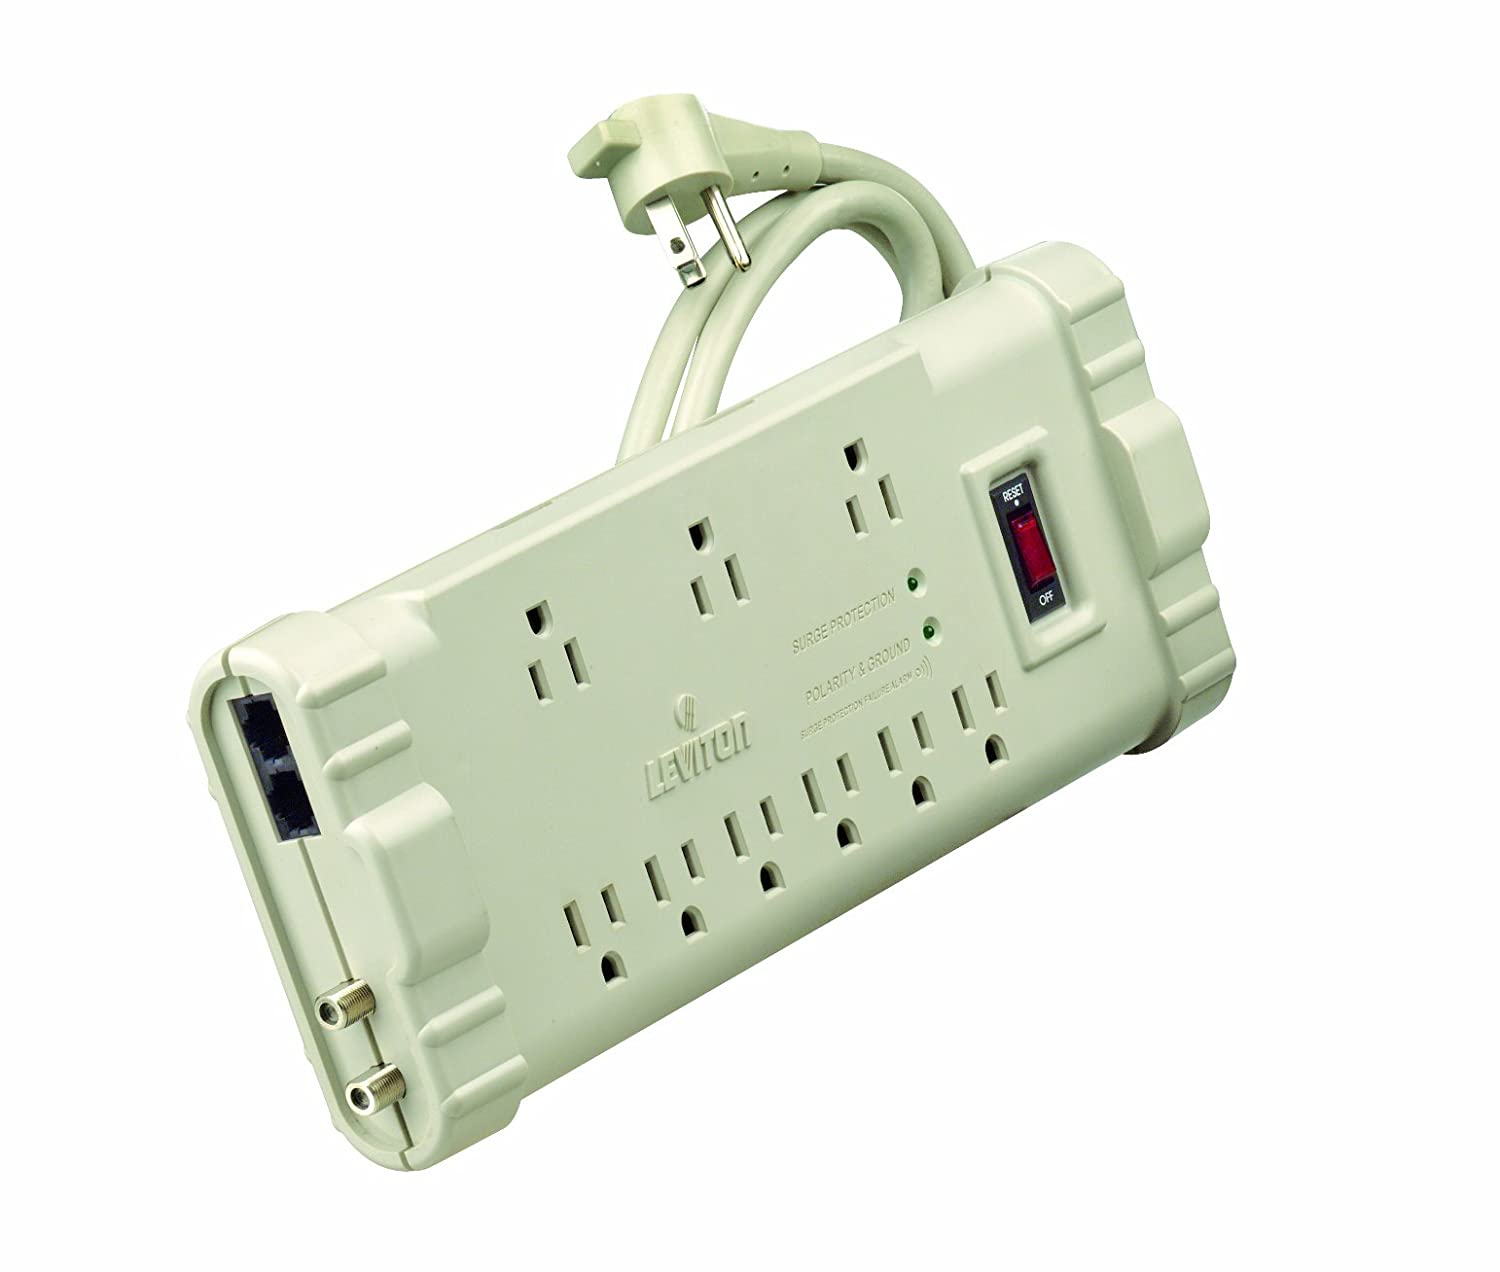 Amazon.com: Leviton S2000-S15 120 Volt/15 Amp, Office Grade Surge ...